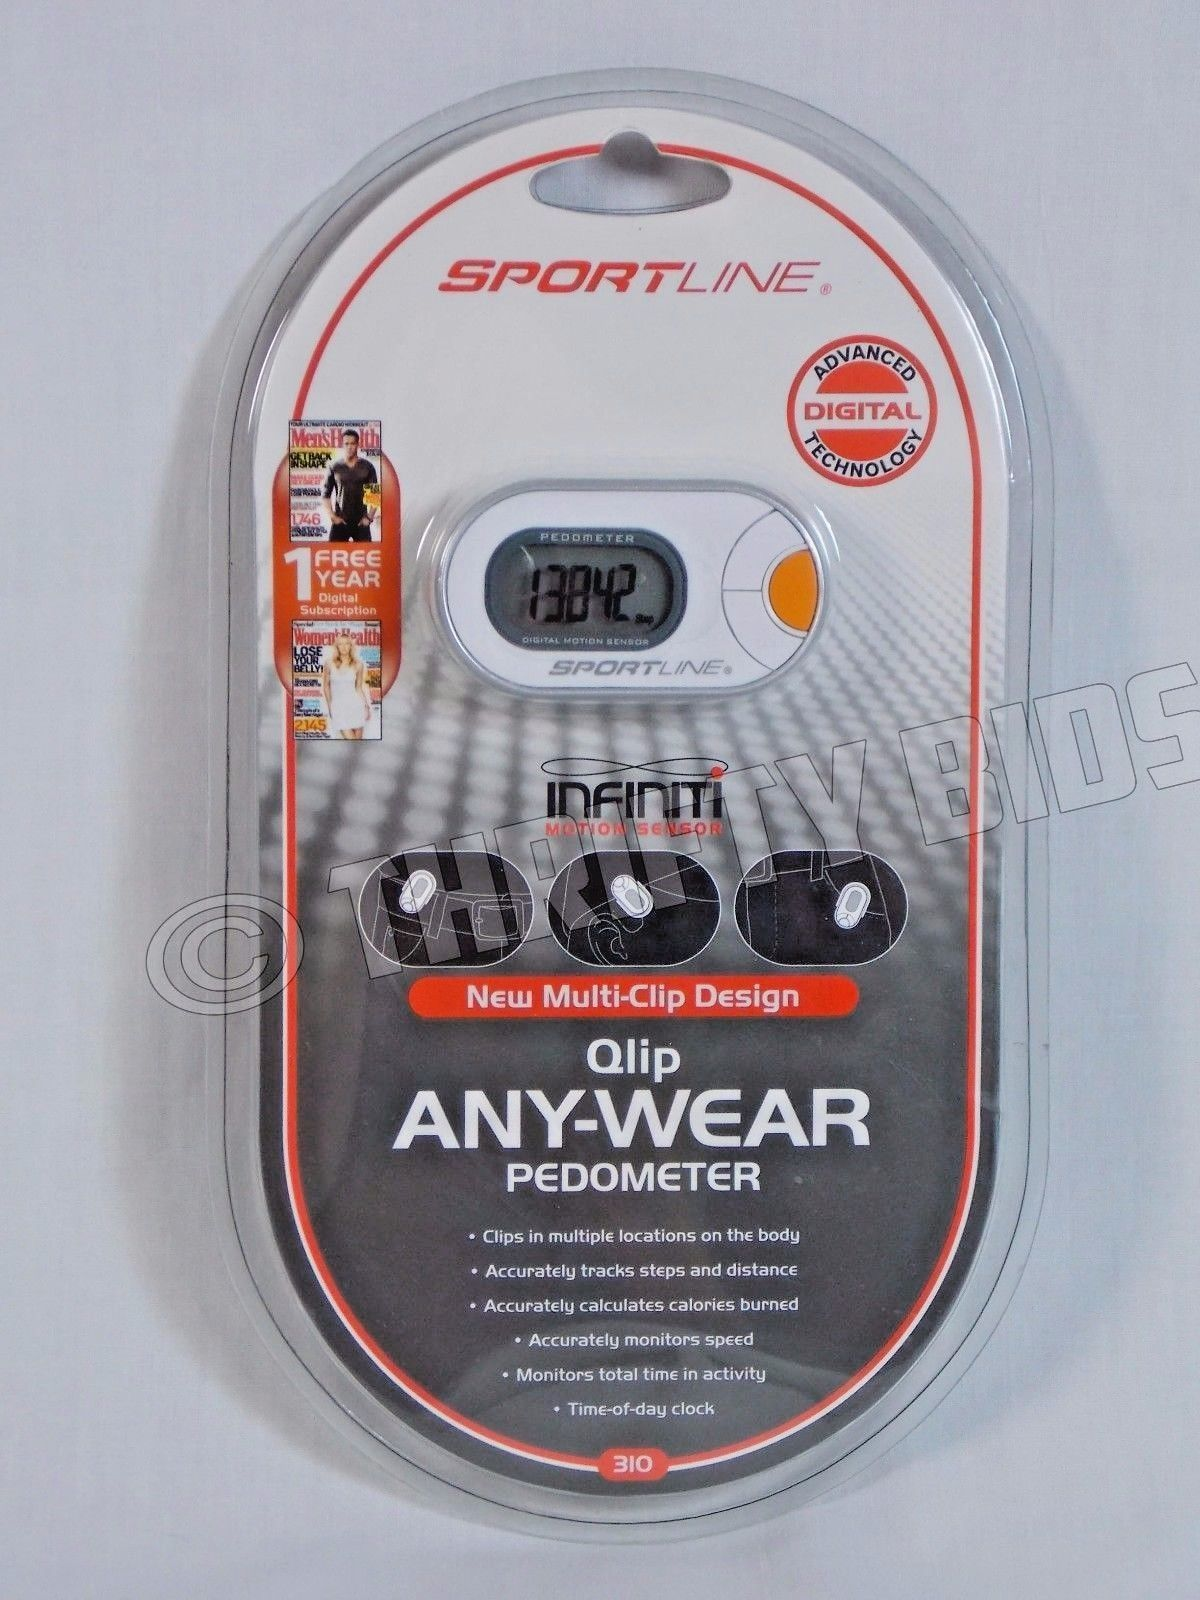 Sportline 310 Qlip Any Wear Digital Pedometer Infiniti Motion Sensor White Clip